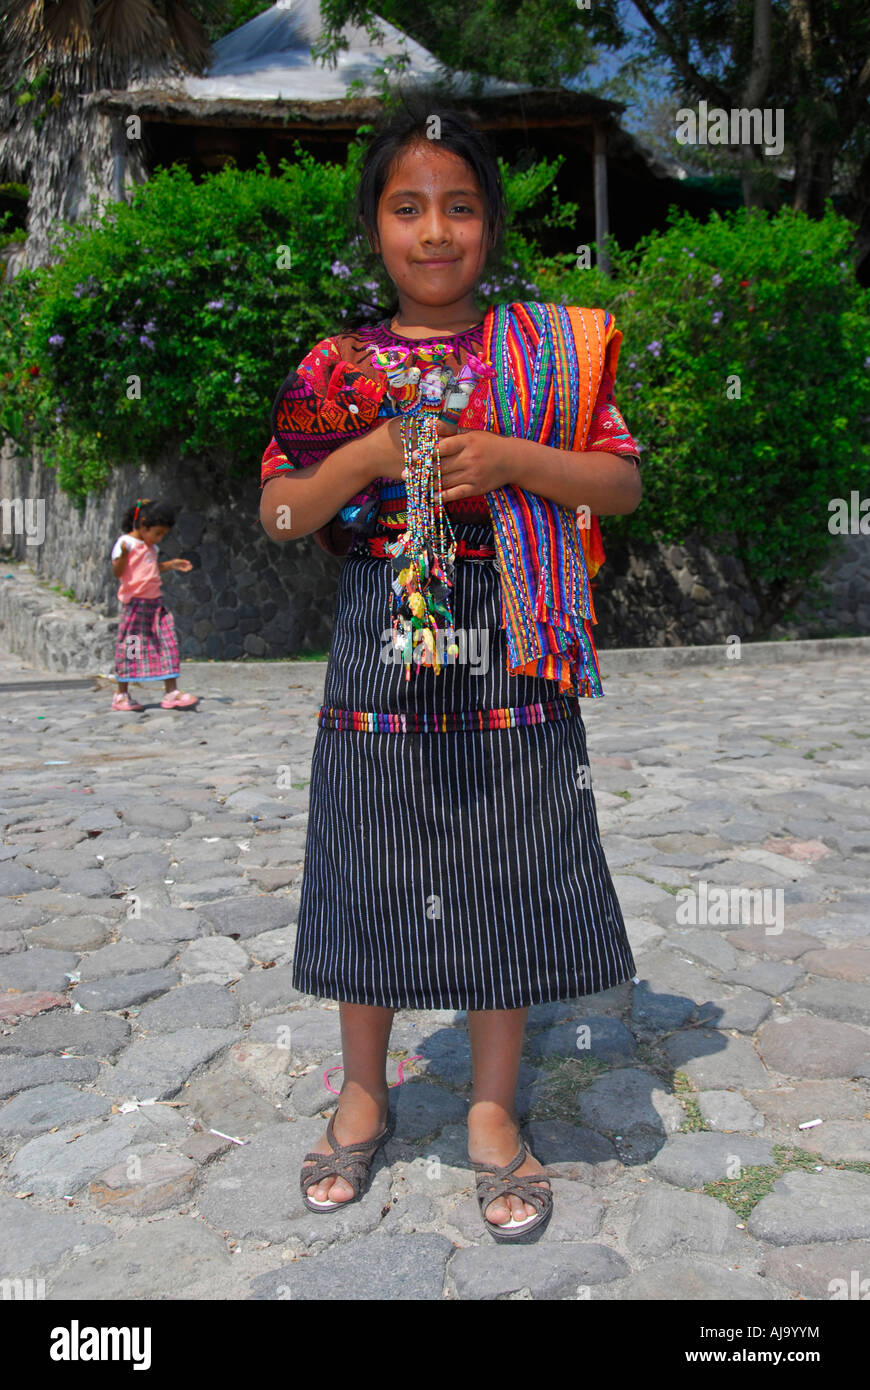 Indigenous girl in traditional Mayan dress Stock Photo